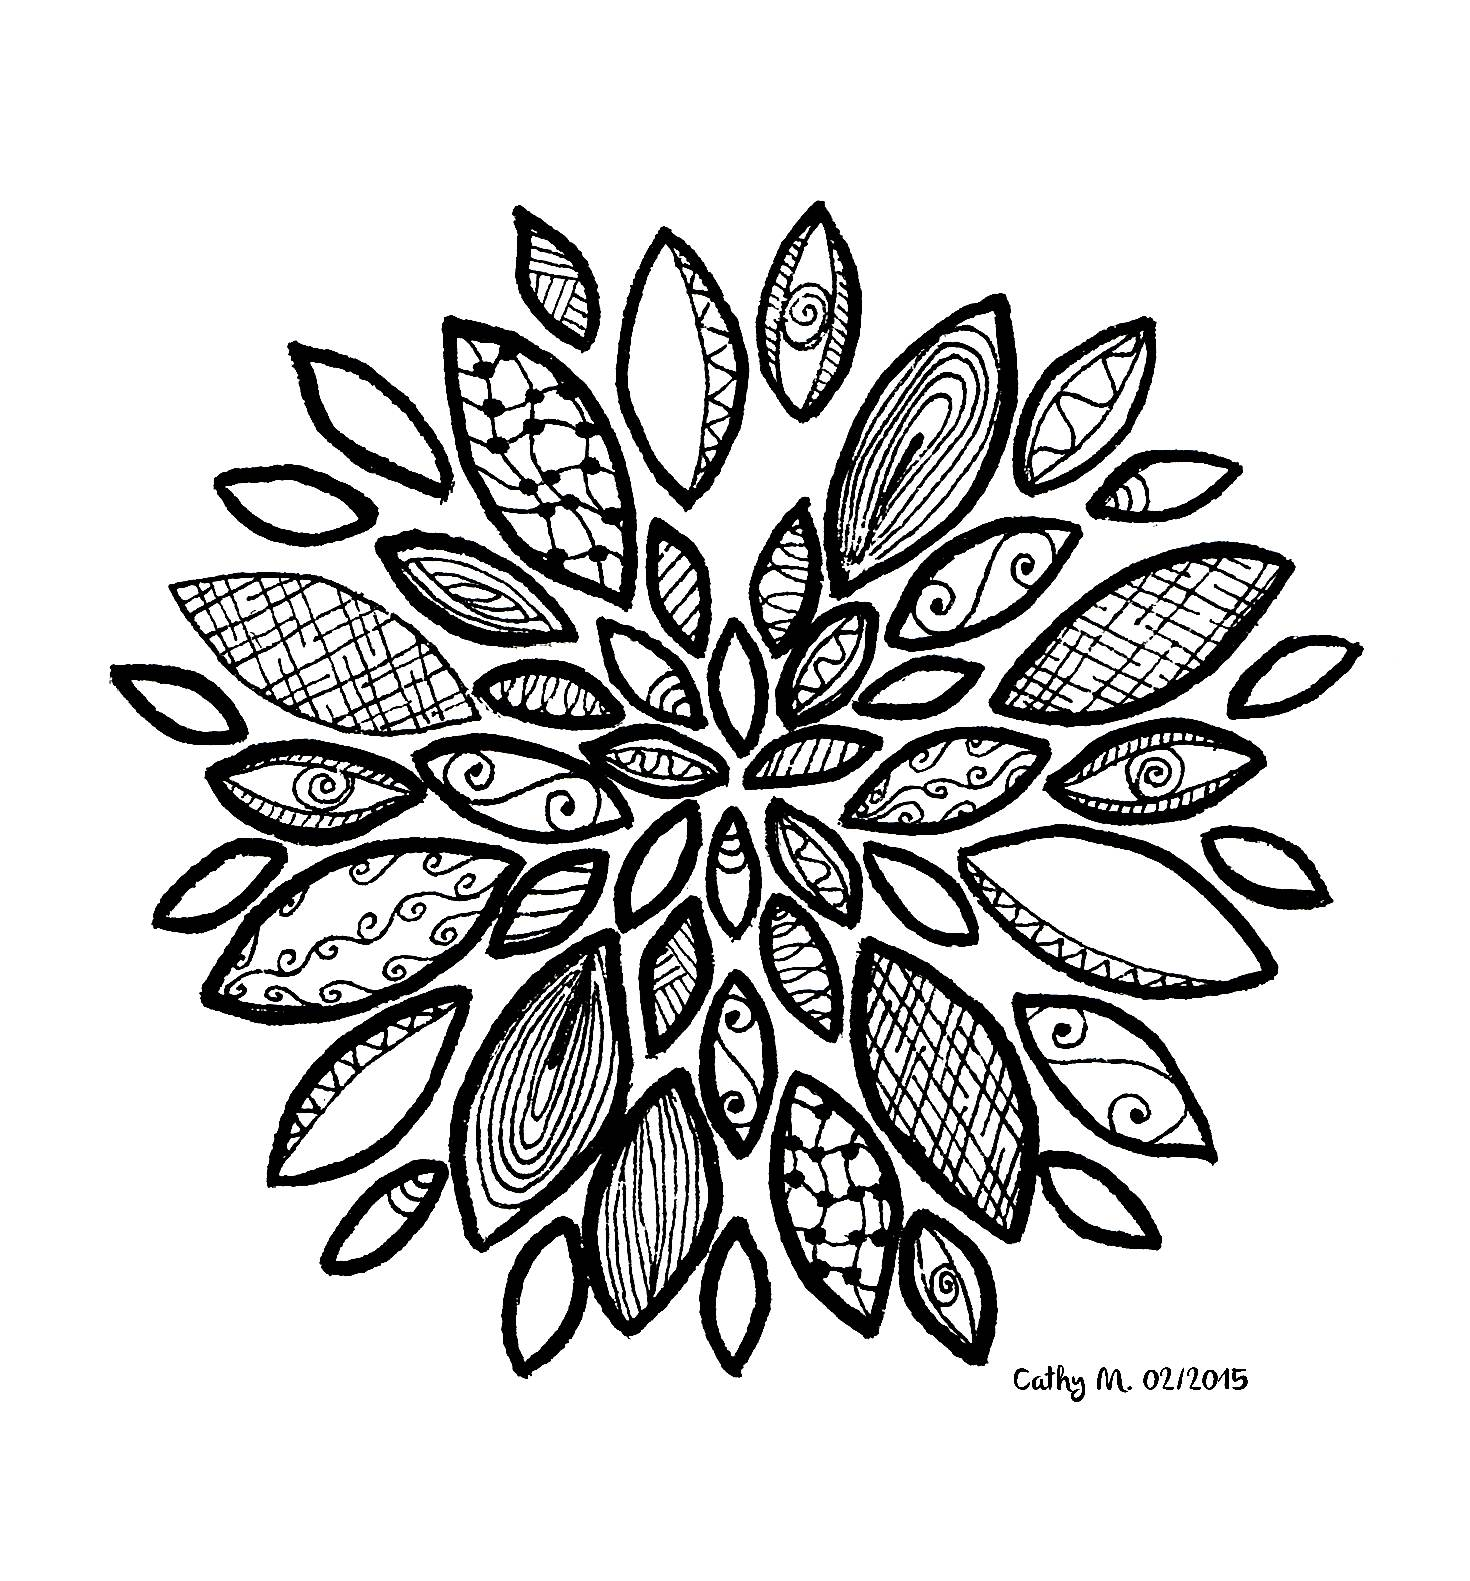 Cathym22 anti stress adult coloring pages page 7 Zen coloring book for adults download